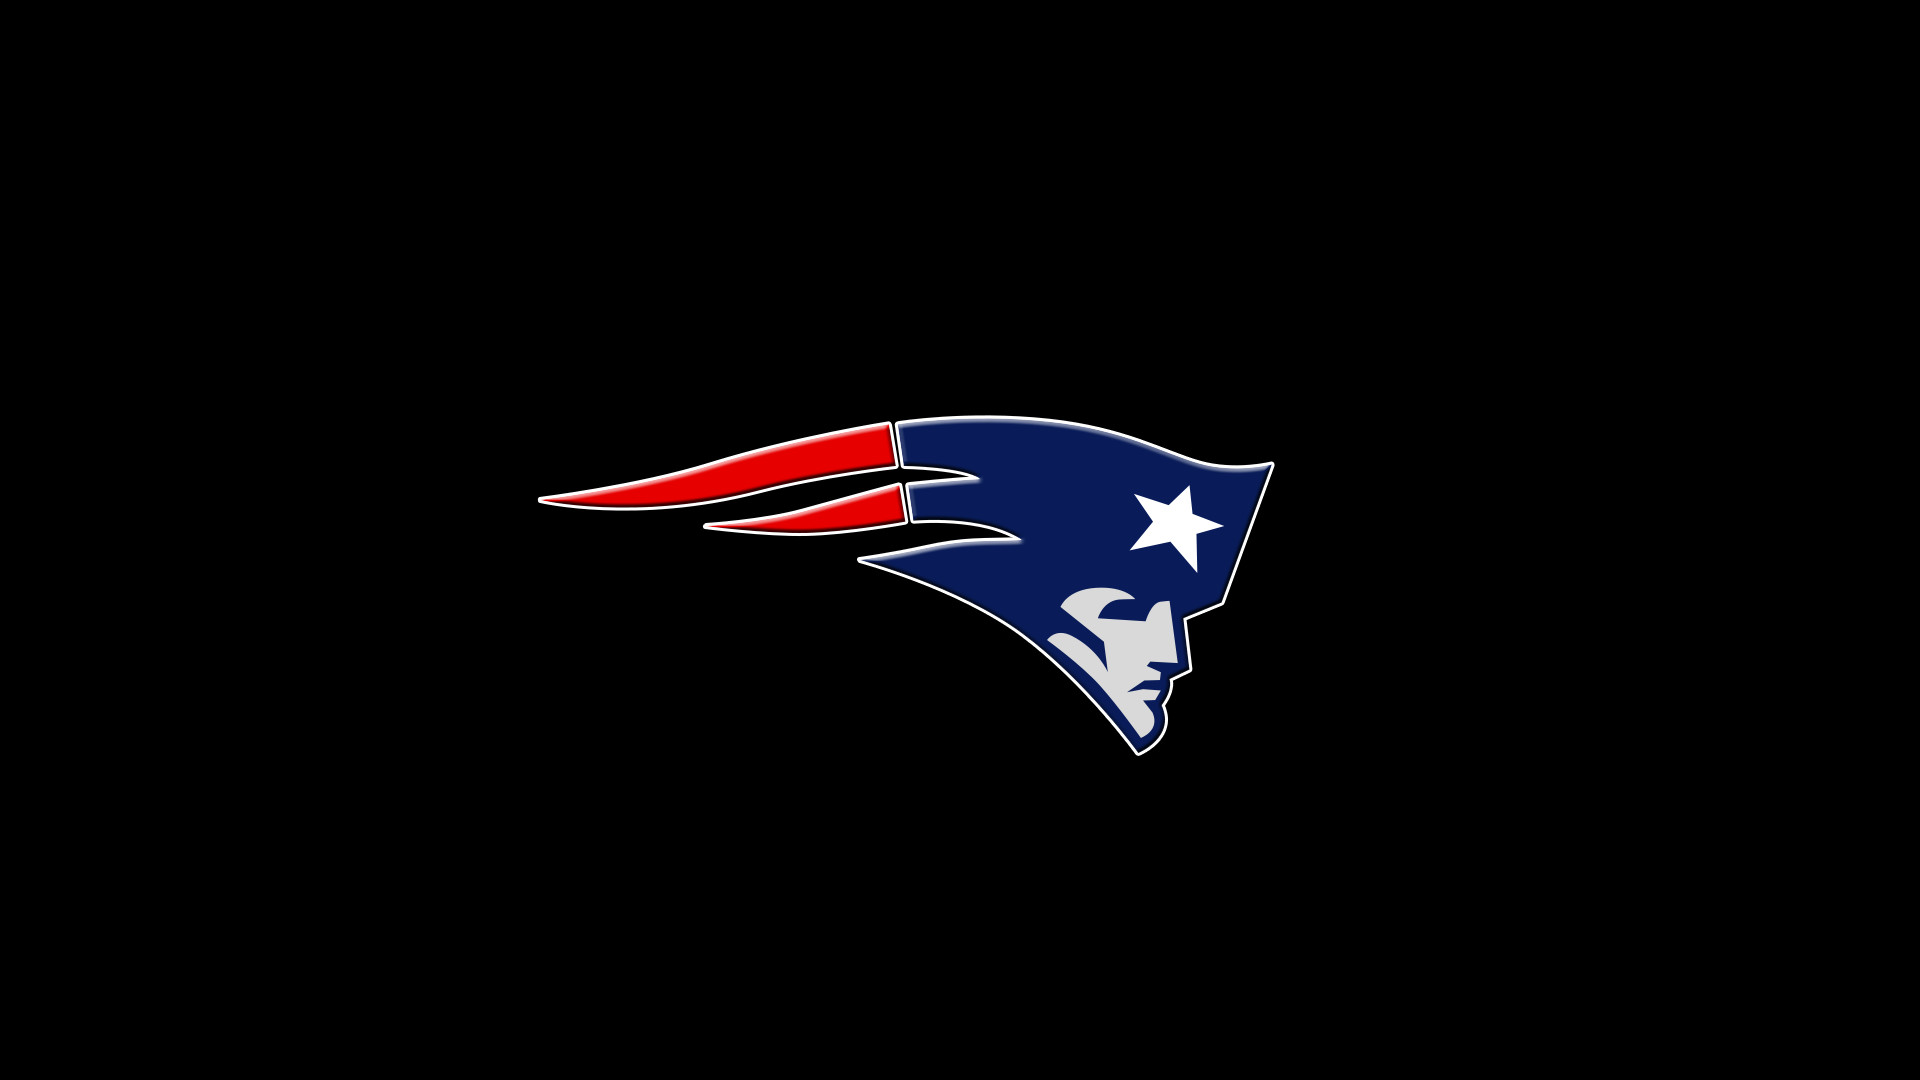 Old patriots logo wallpaper 60 images 1920x1080 new england patriots wallpaper by cynicalasshole on deviantart 19201080 patriots mobile wallpapers voltagebd Images